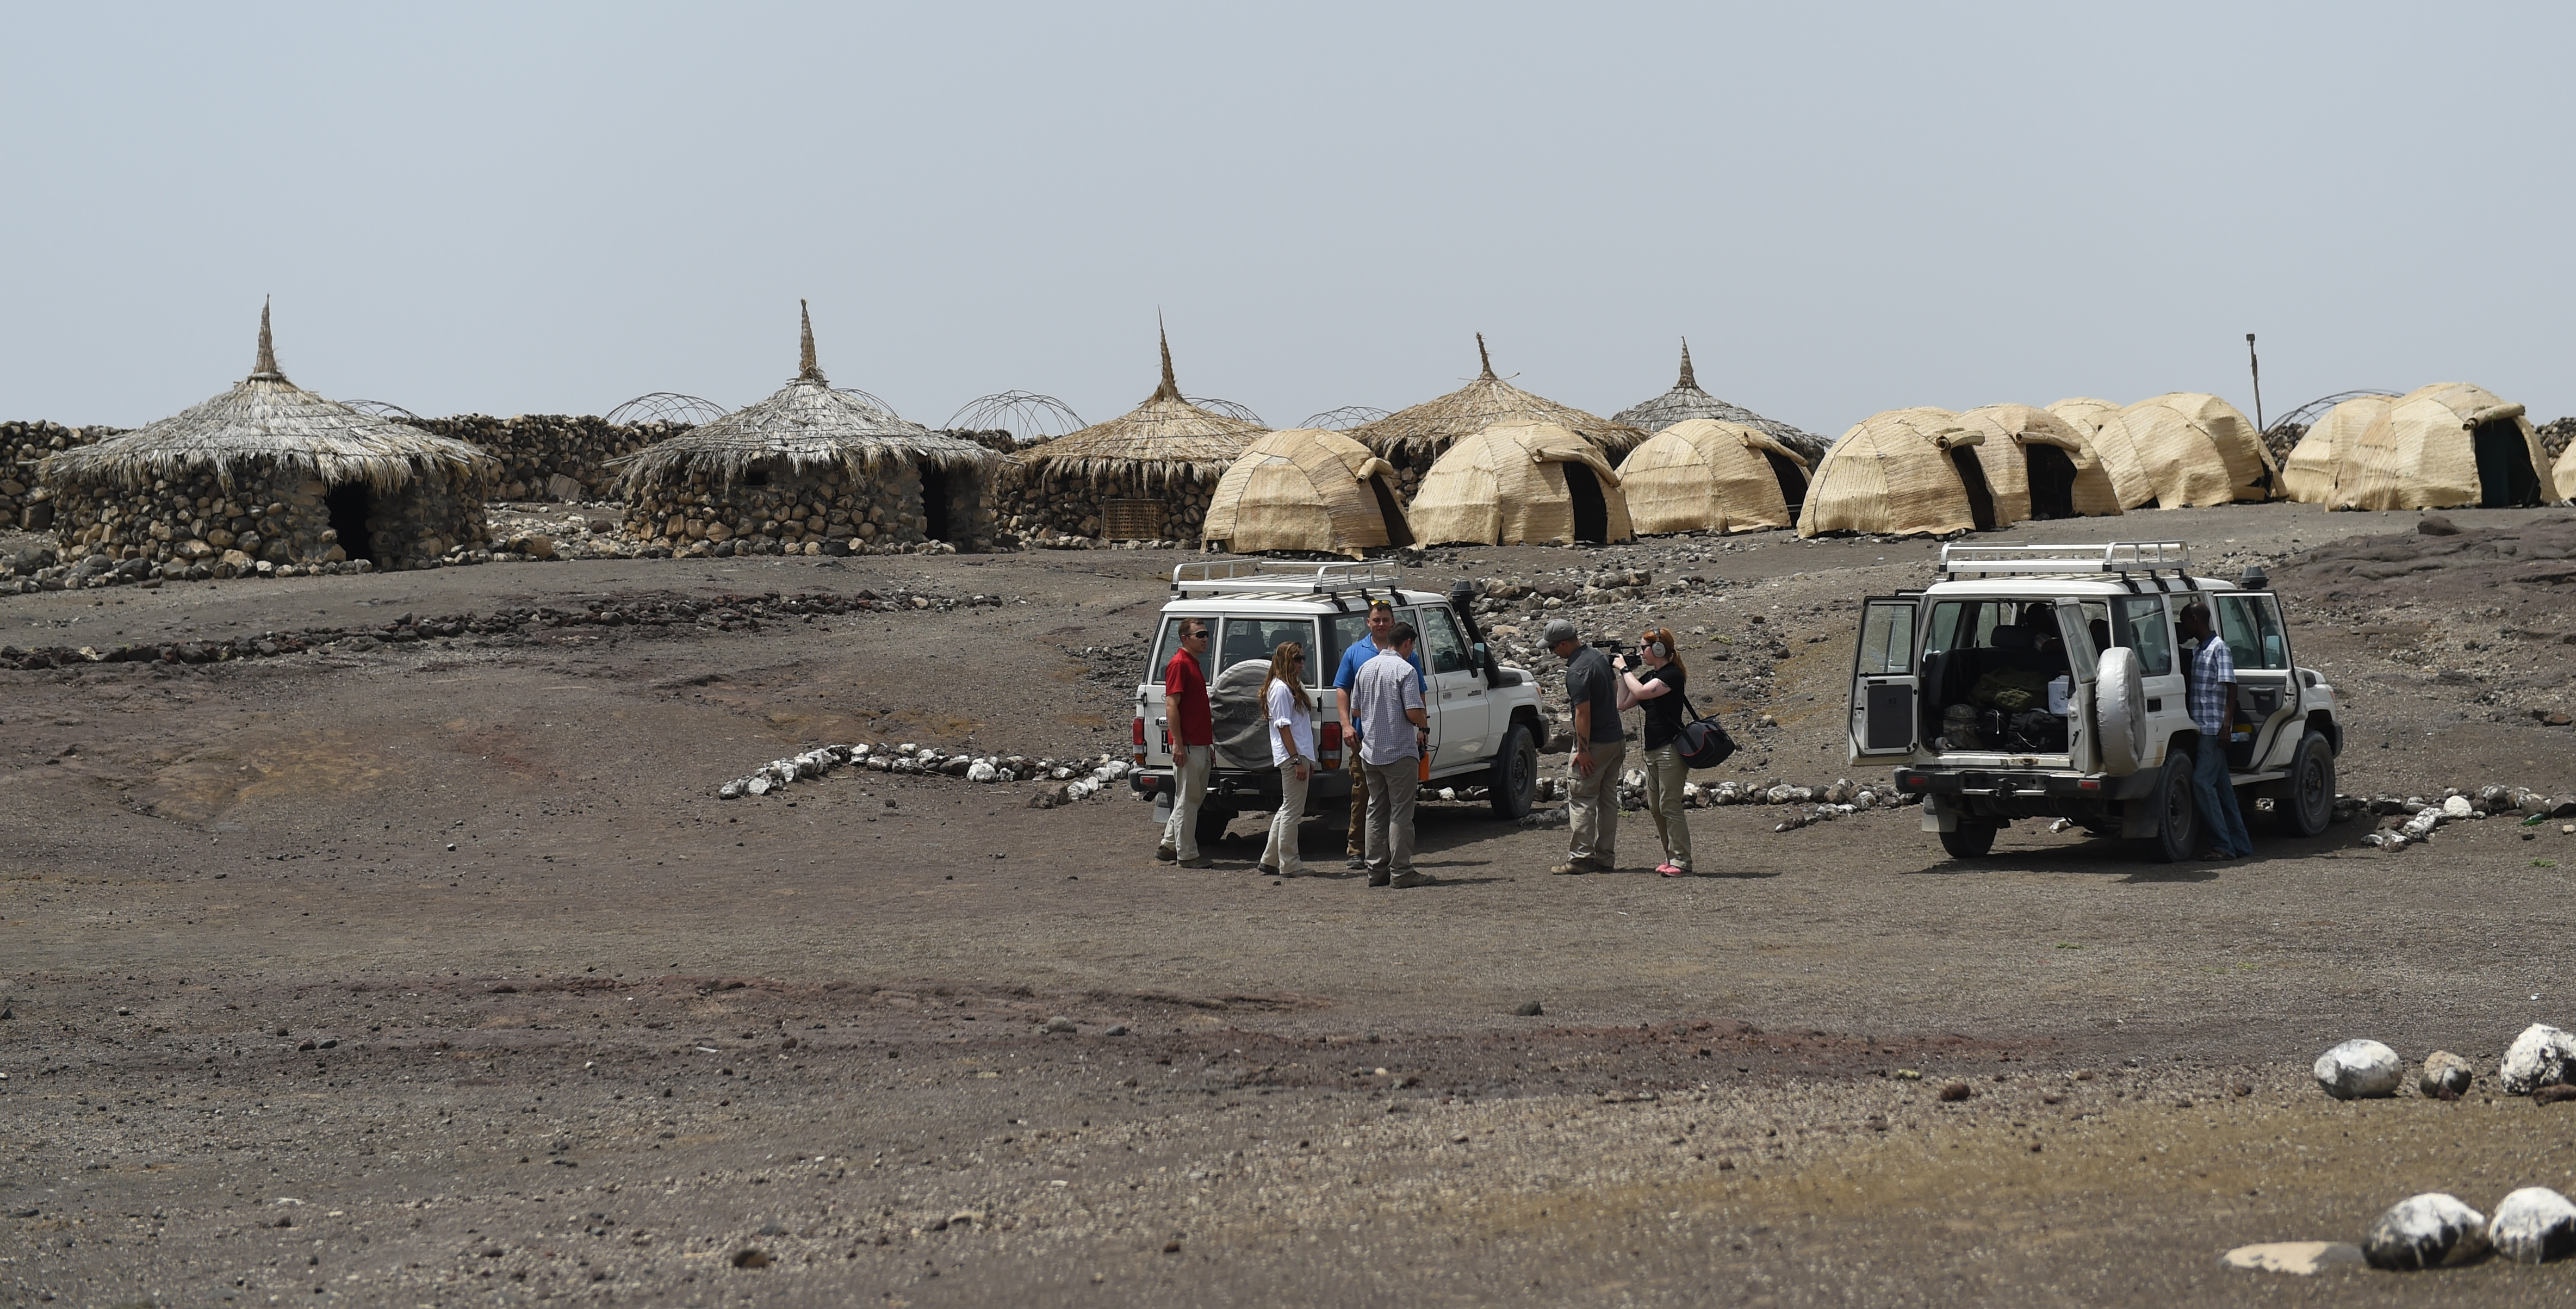 Members of the U.S. Army's 404th Civil Affairs Battalion prepare to pack up for their trip home from Lac Abbé, Djibouti, May 20, 2015. The team met village elders for the first time, to better understand the significance and utility of the nearby arid lake, along with the village's nutrition center. The team is assigned to the Combined Joint Task Force- Horn of Africa and act as liaisons between the military and their civilian counterparts. (U.S. Air Force photo by Senior Airman Nesha Humes)